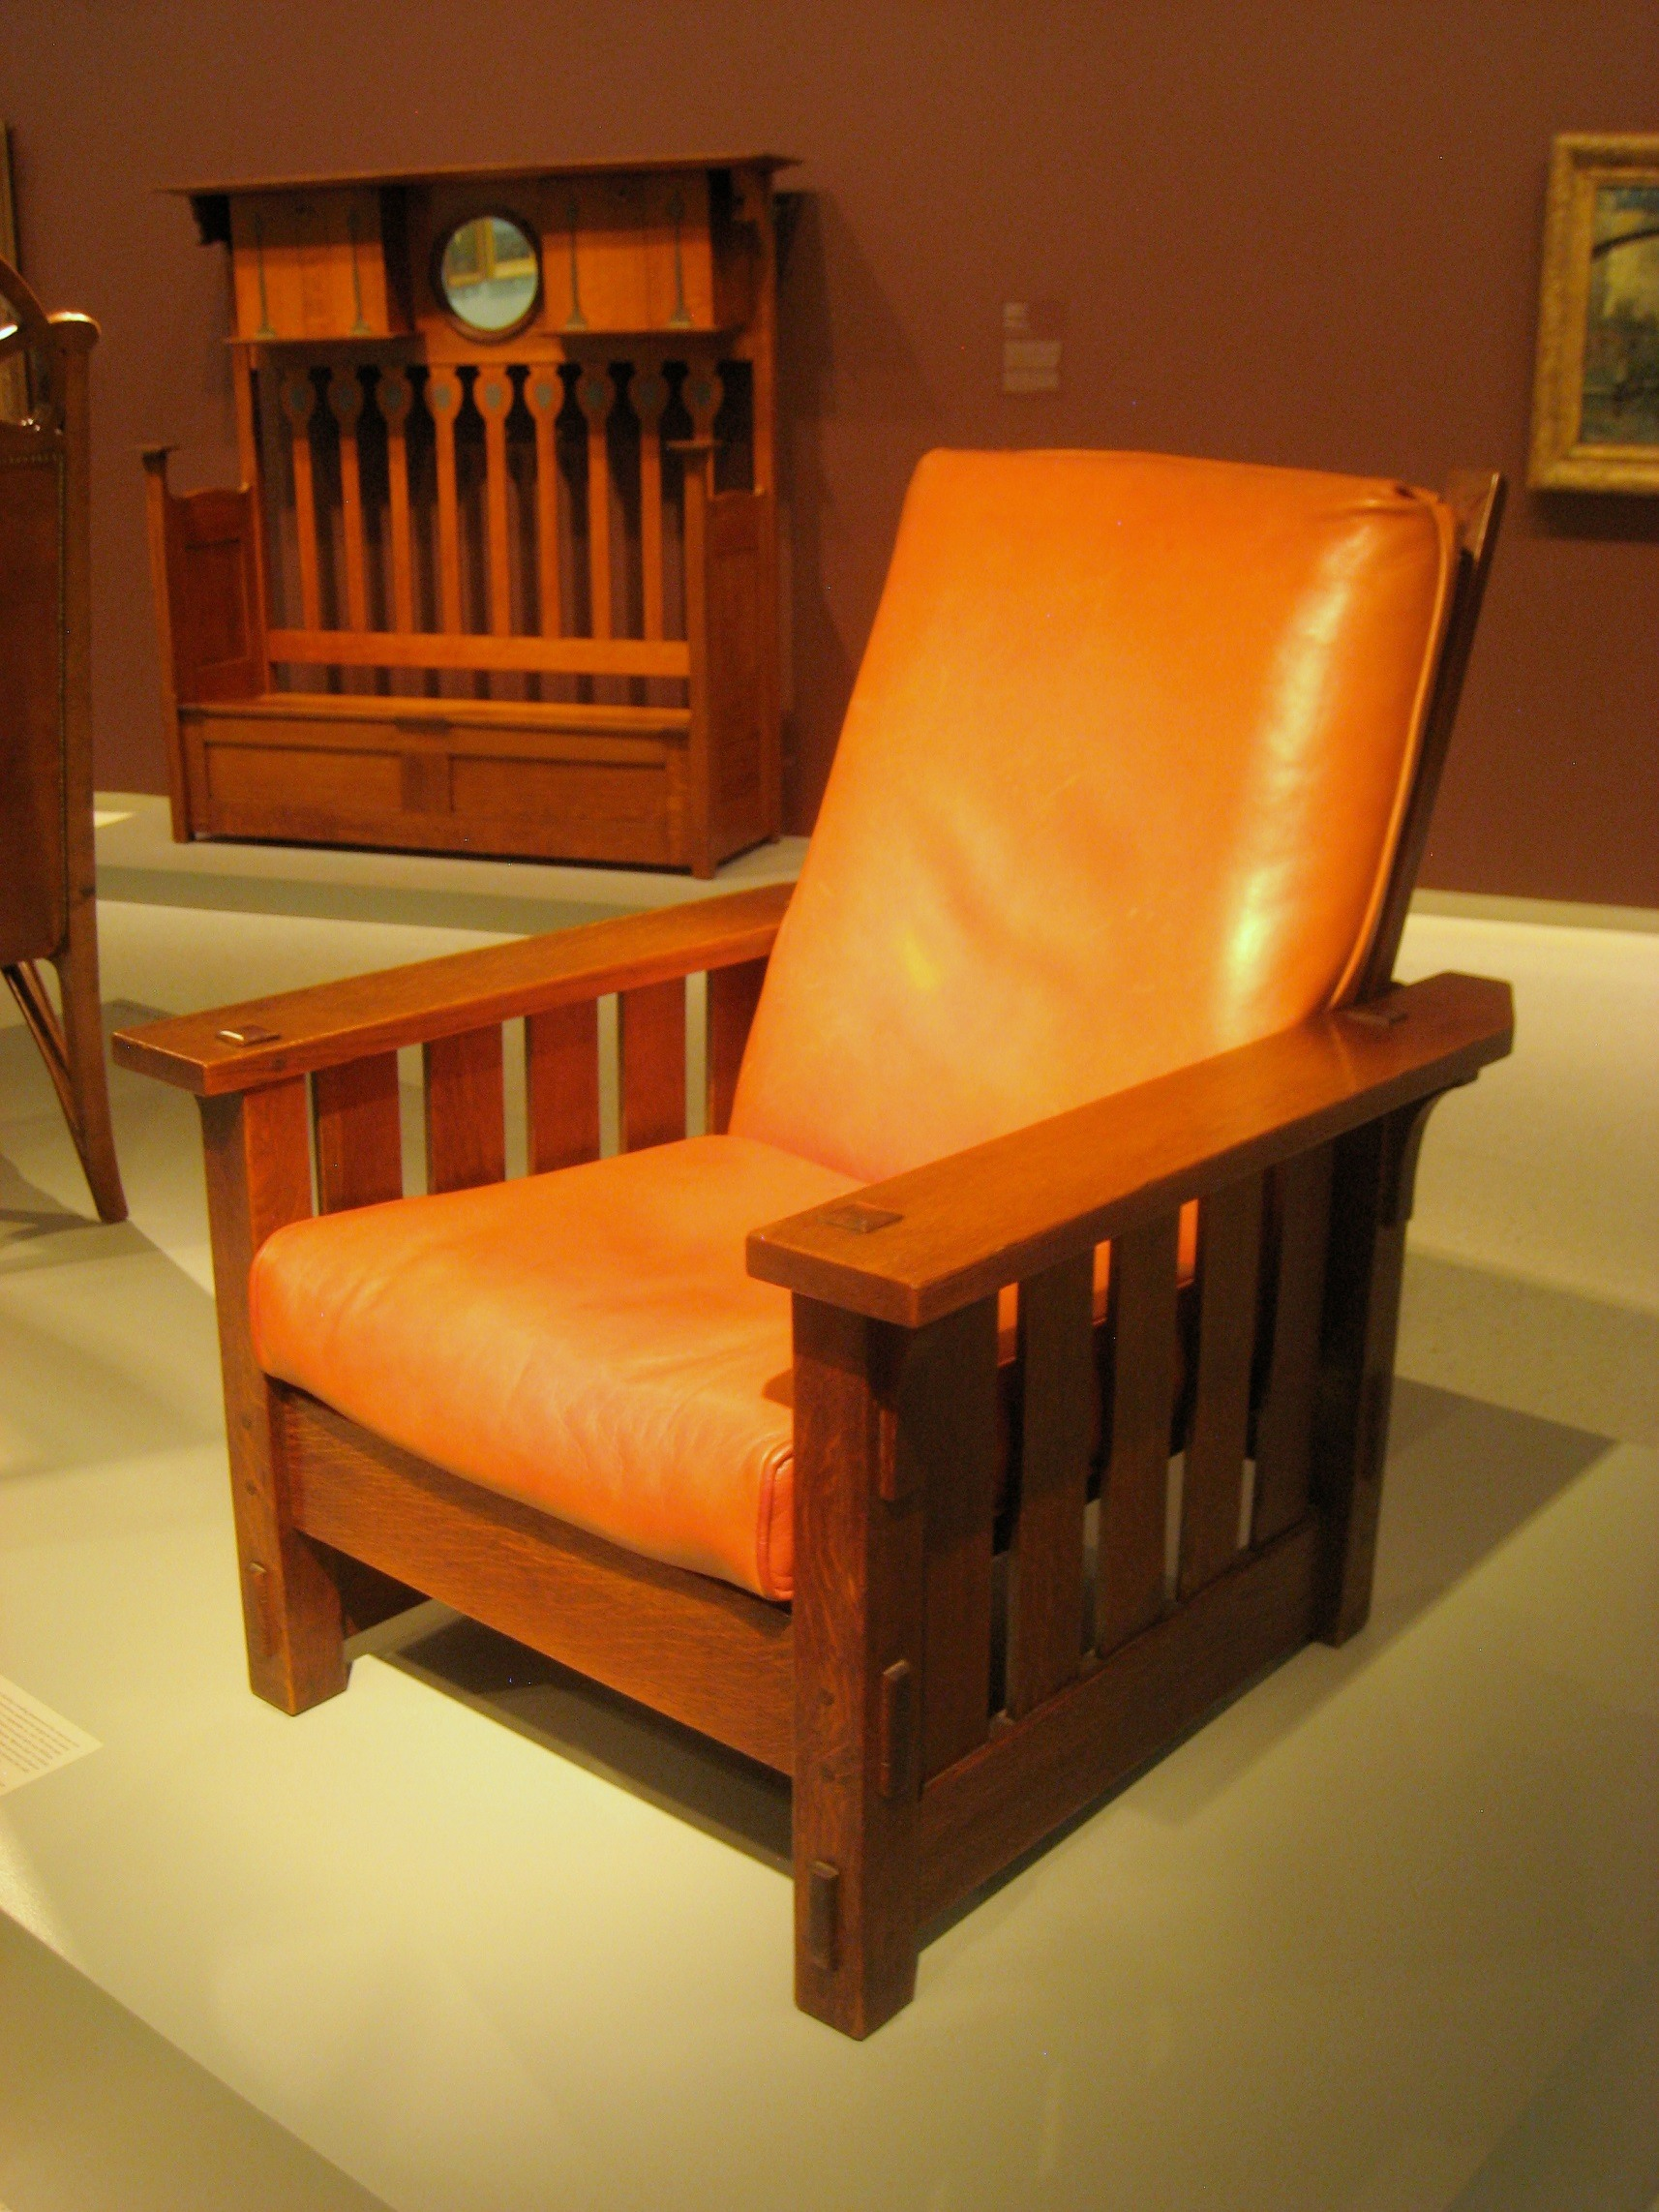 Gustav Stickley craftsman chair